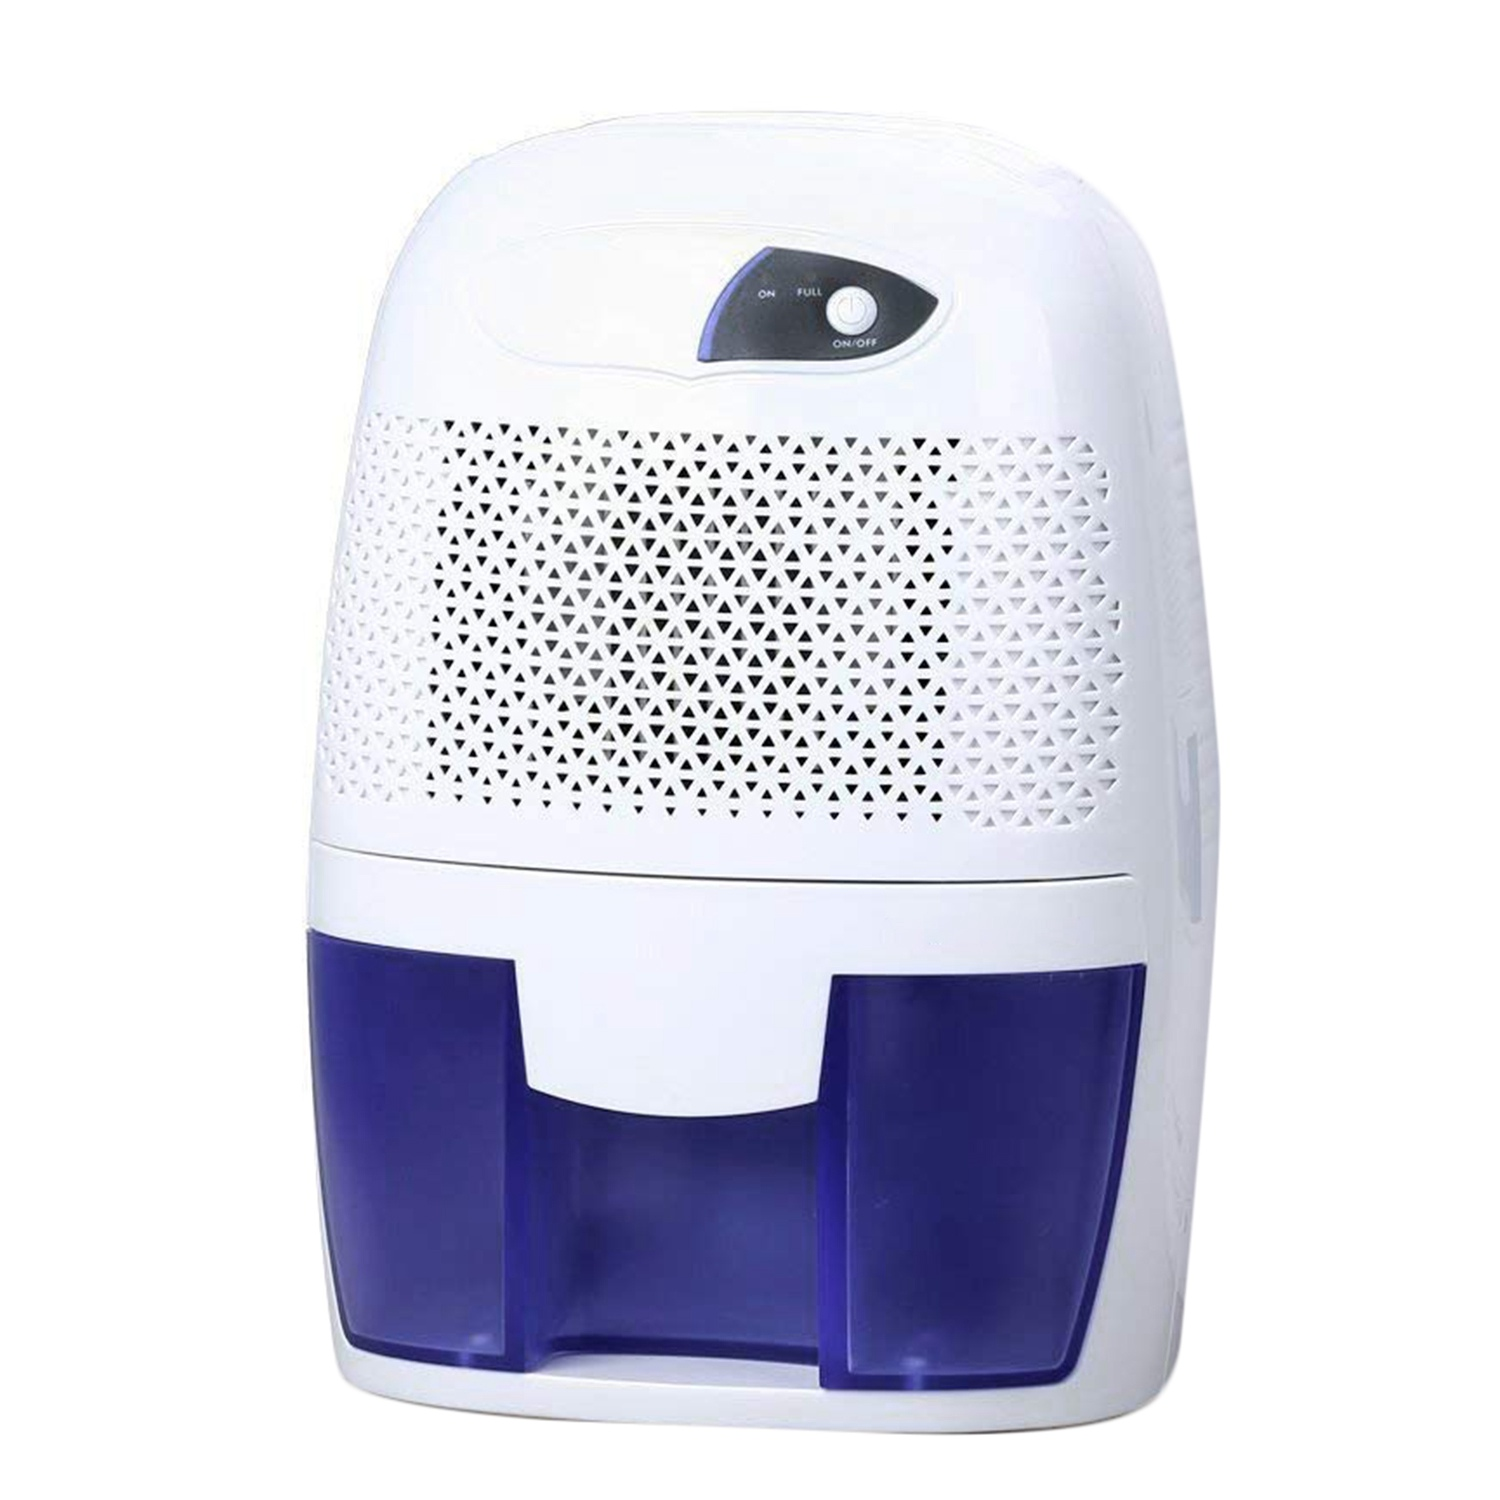 Mini Dehumidifier For Bathroom,Bedroom, Closet, Basement Ultra Quiet (White)(Us Plug )Mini Dehumidifier For Bathroom,Bedroom, Closet, Basement Ultra Quiet (White)(Us Plug )